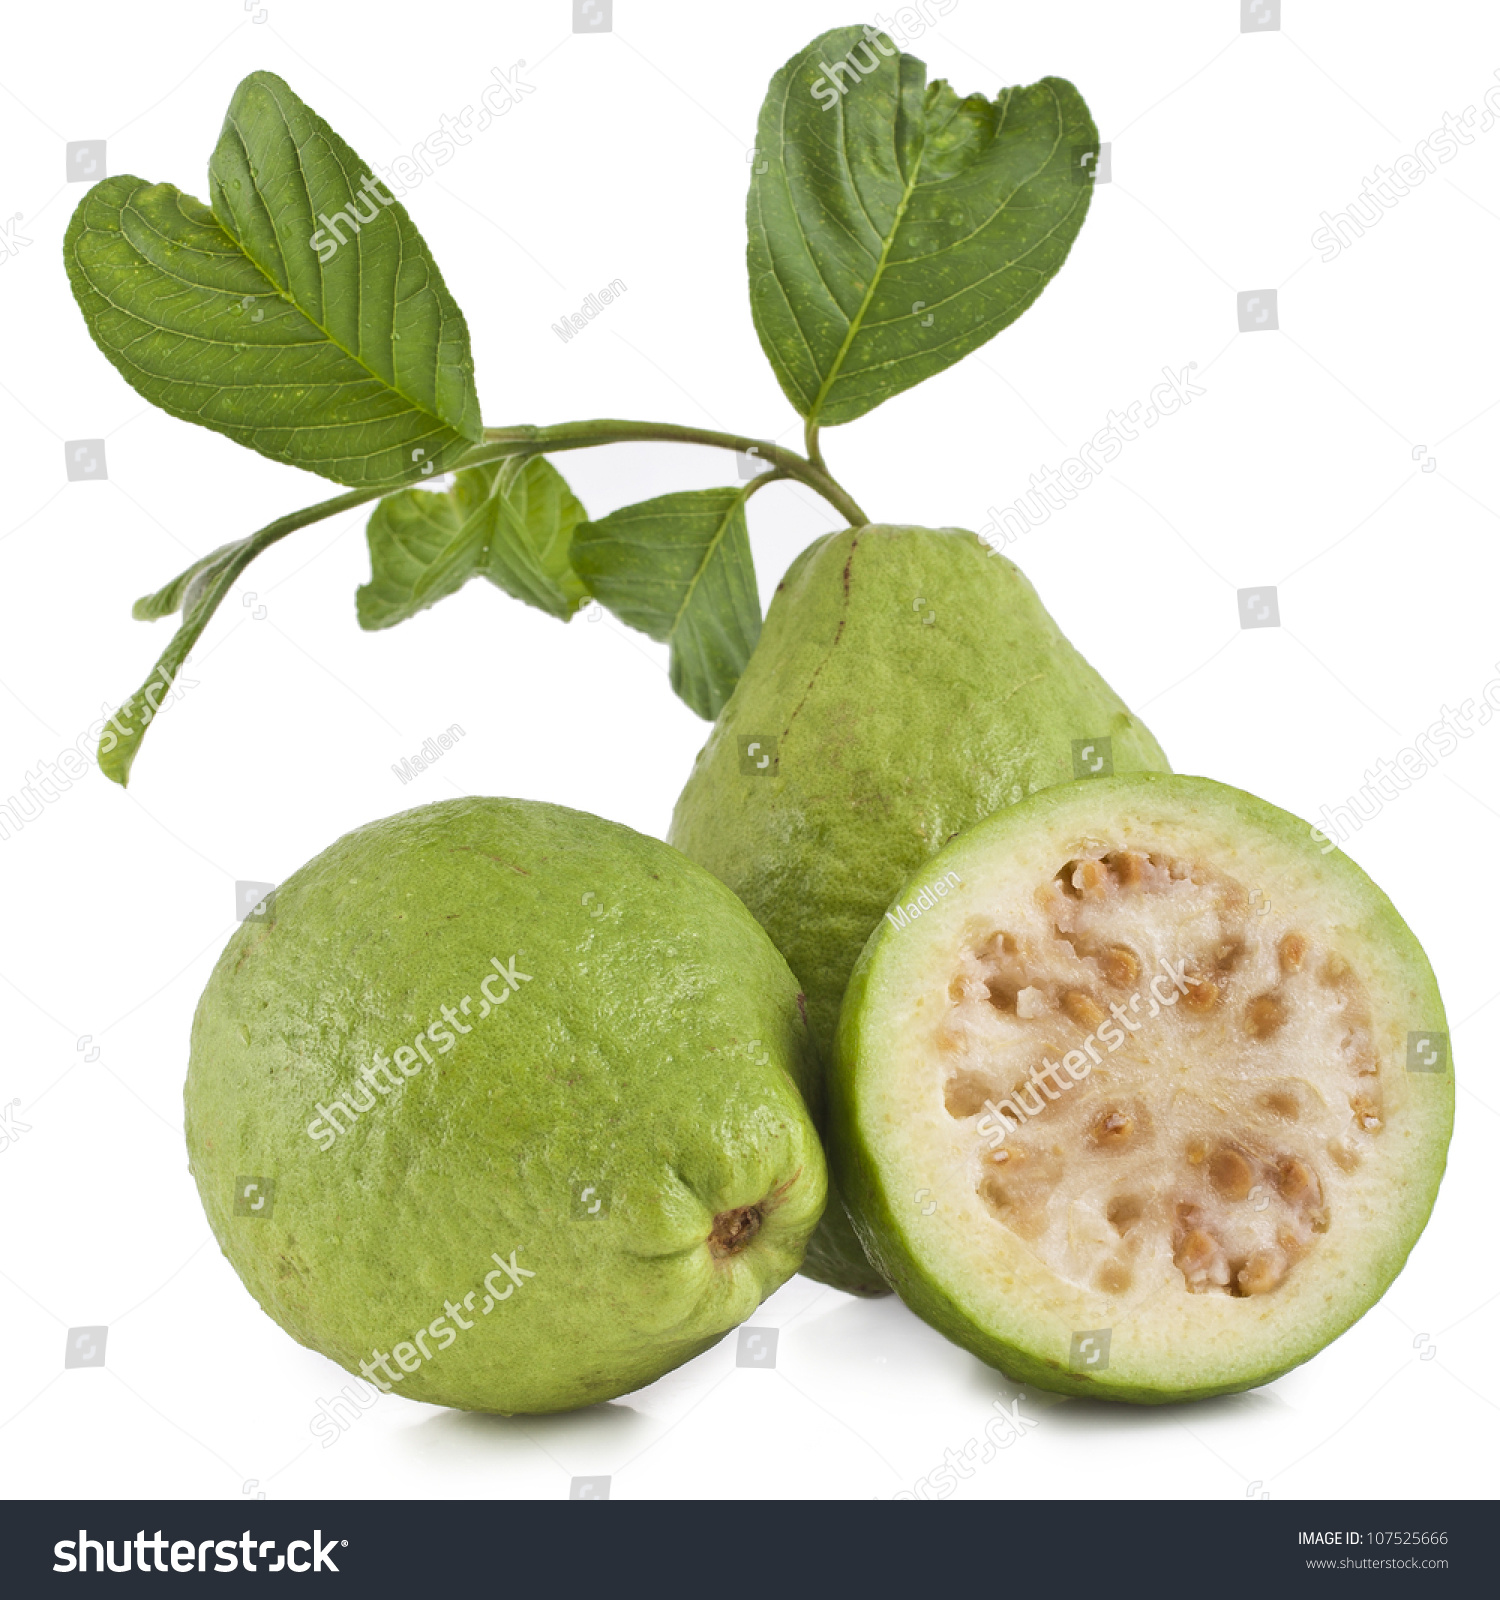 Fresh Guava Fruit With Leaves On White Background Fresh Guava Fruit Leaves  On White Stock Photo